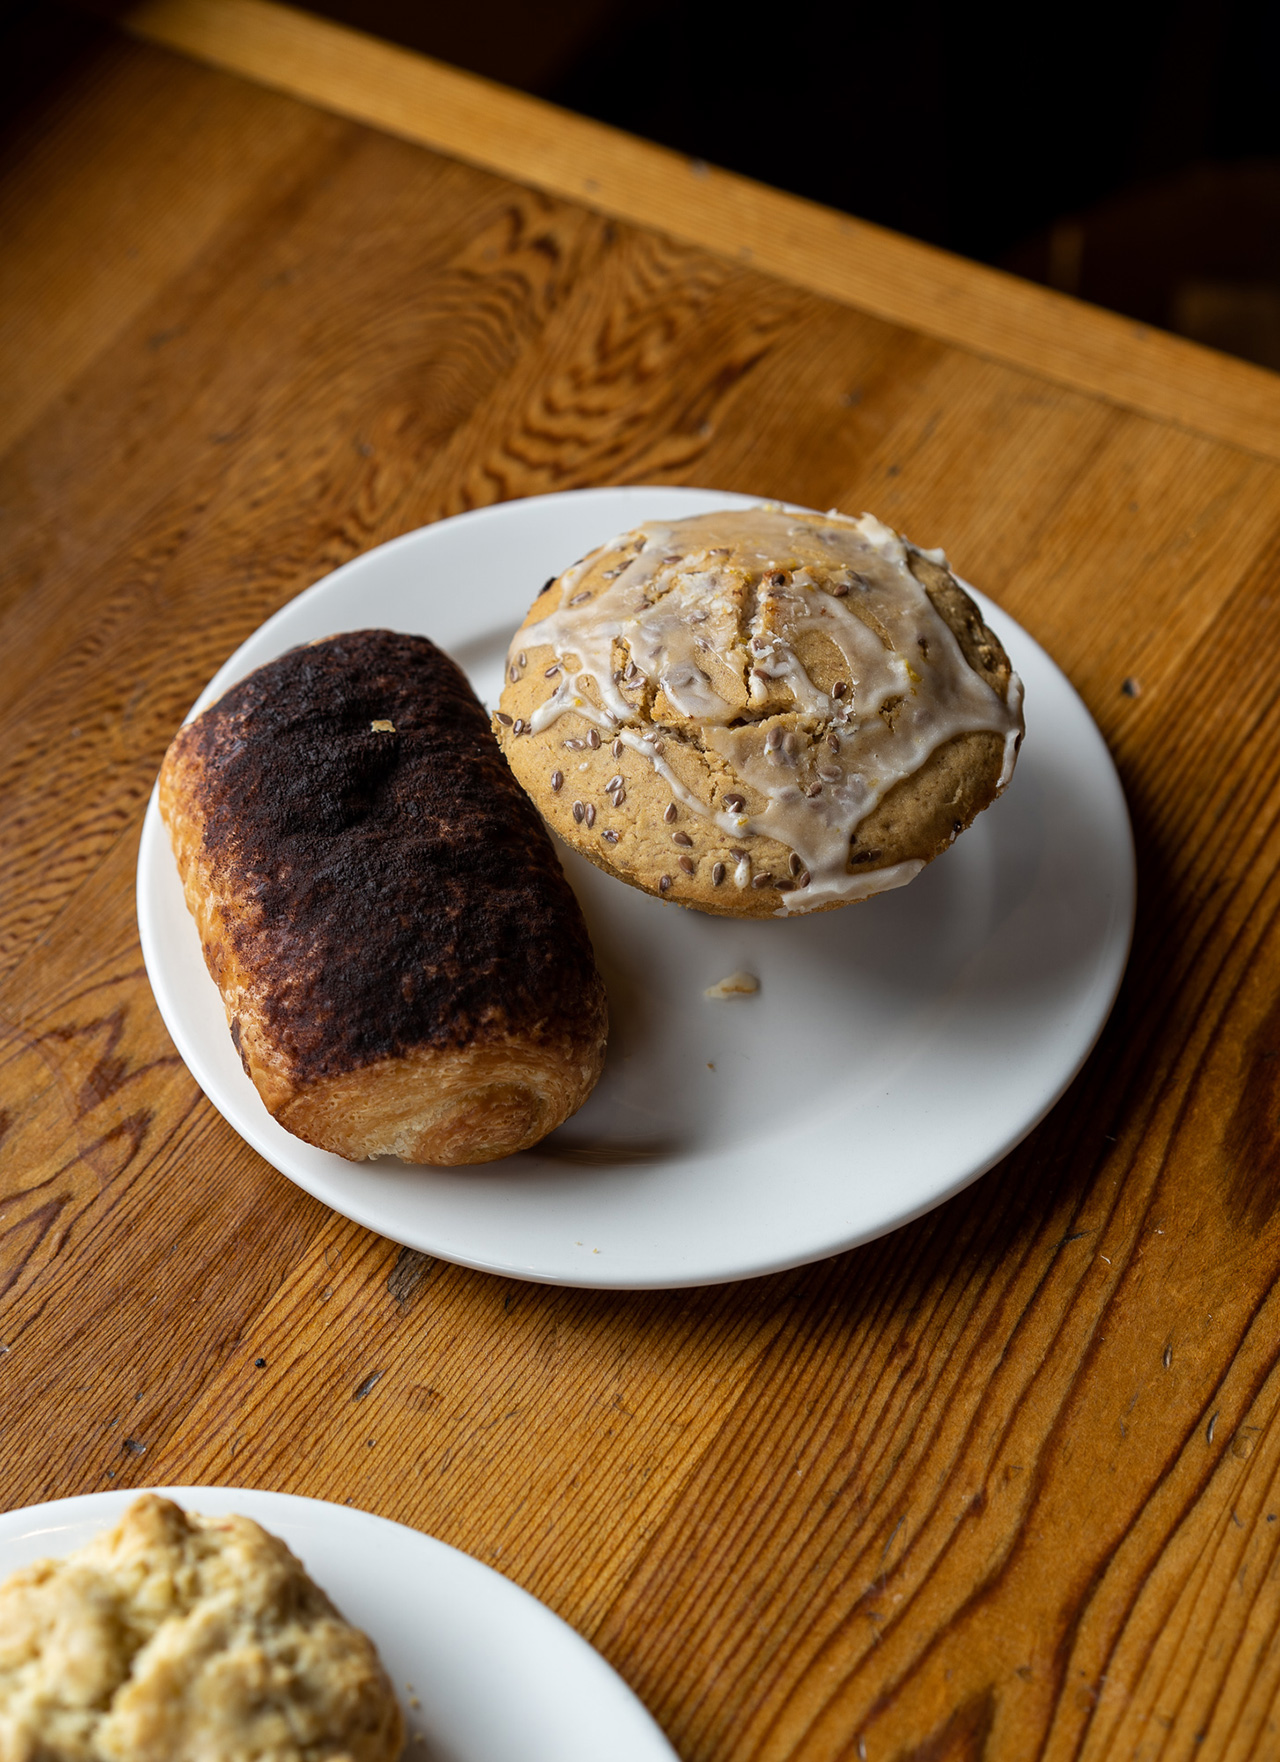 Chocolate croissant and earl grey vanilla muffin.